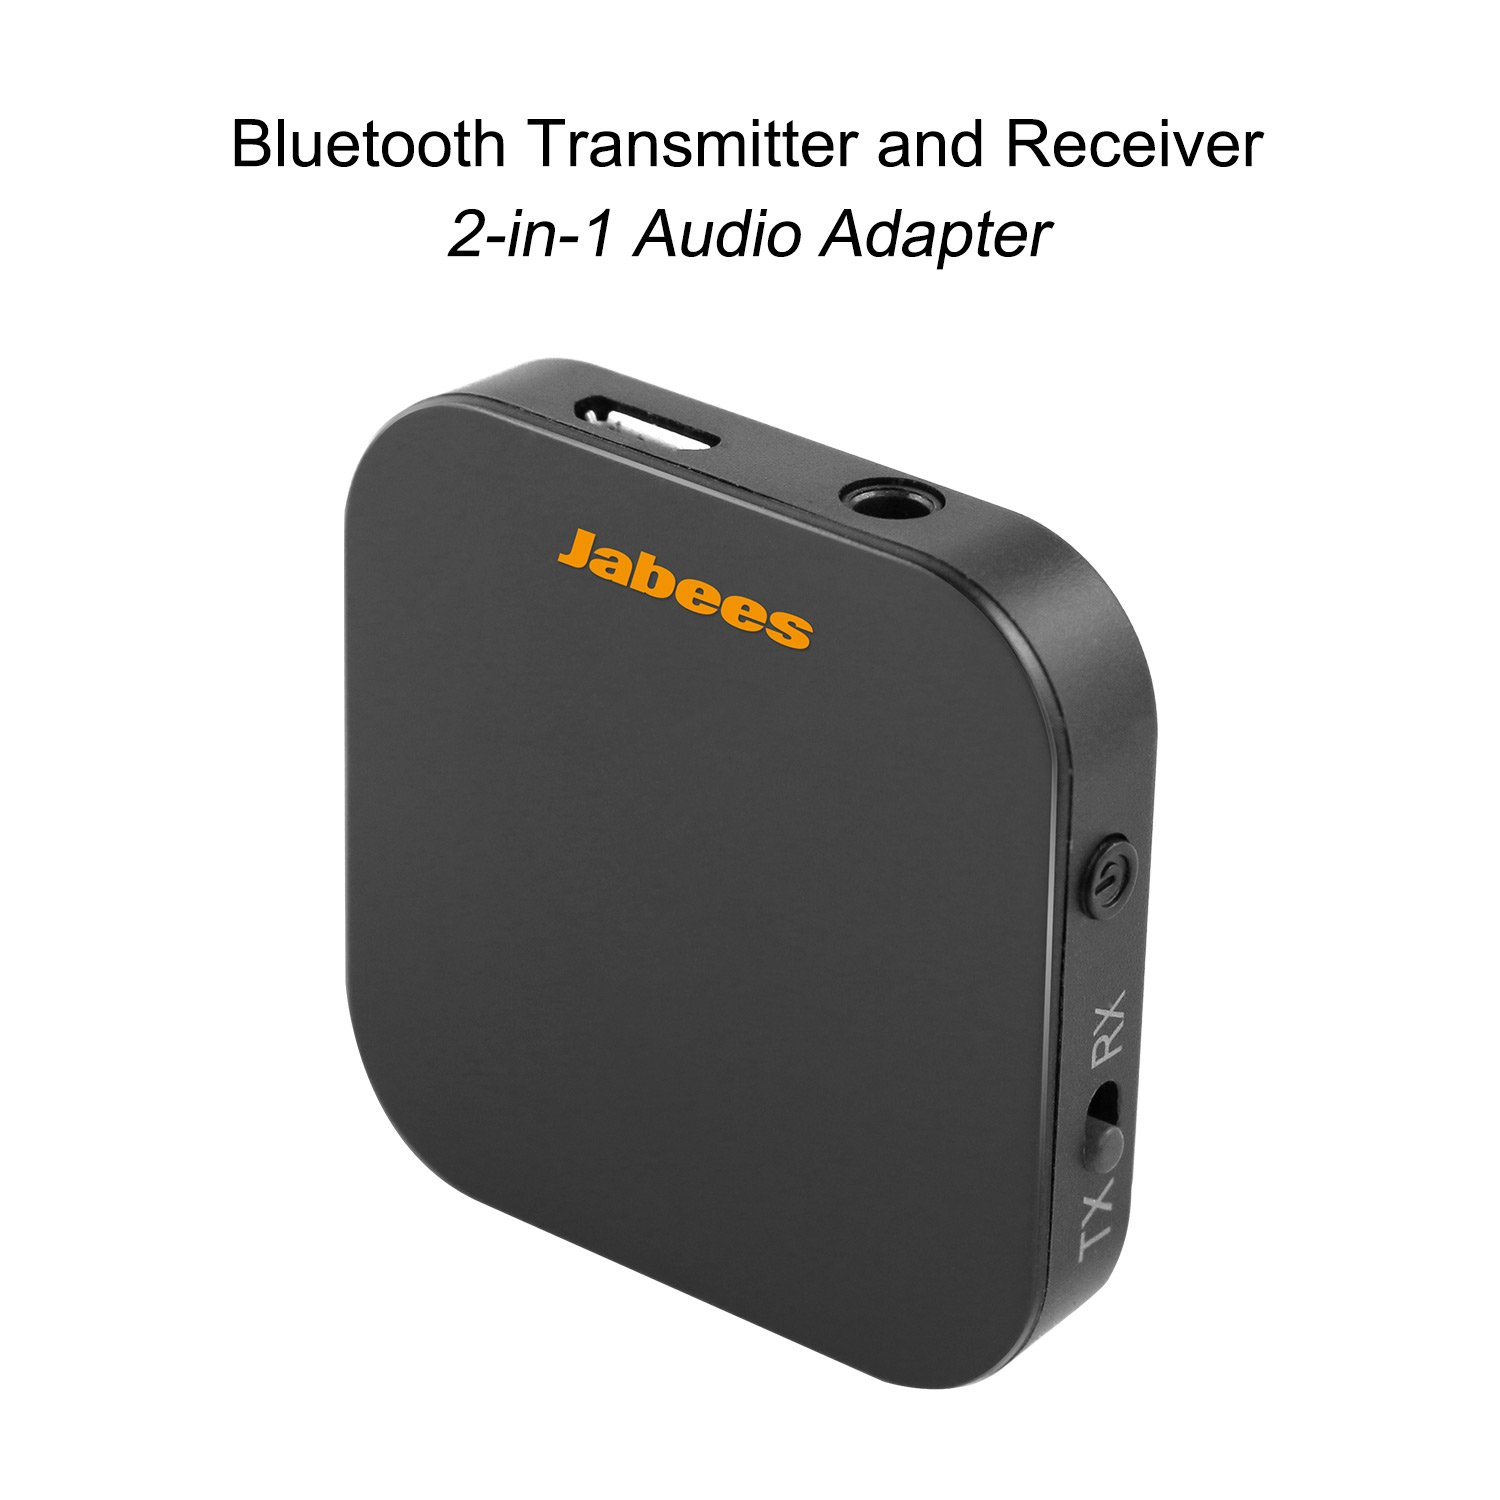 Jabees B-Link Bluetooth 4.1 TV Transmitter and Receiver 2-in-1 Wireless Audio Adapter, atpX Low Latency, Audio Streaming to Two Headphones, For TV and Audio Devices with RCA or 3.5mm Audio Jack